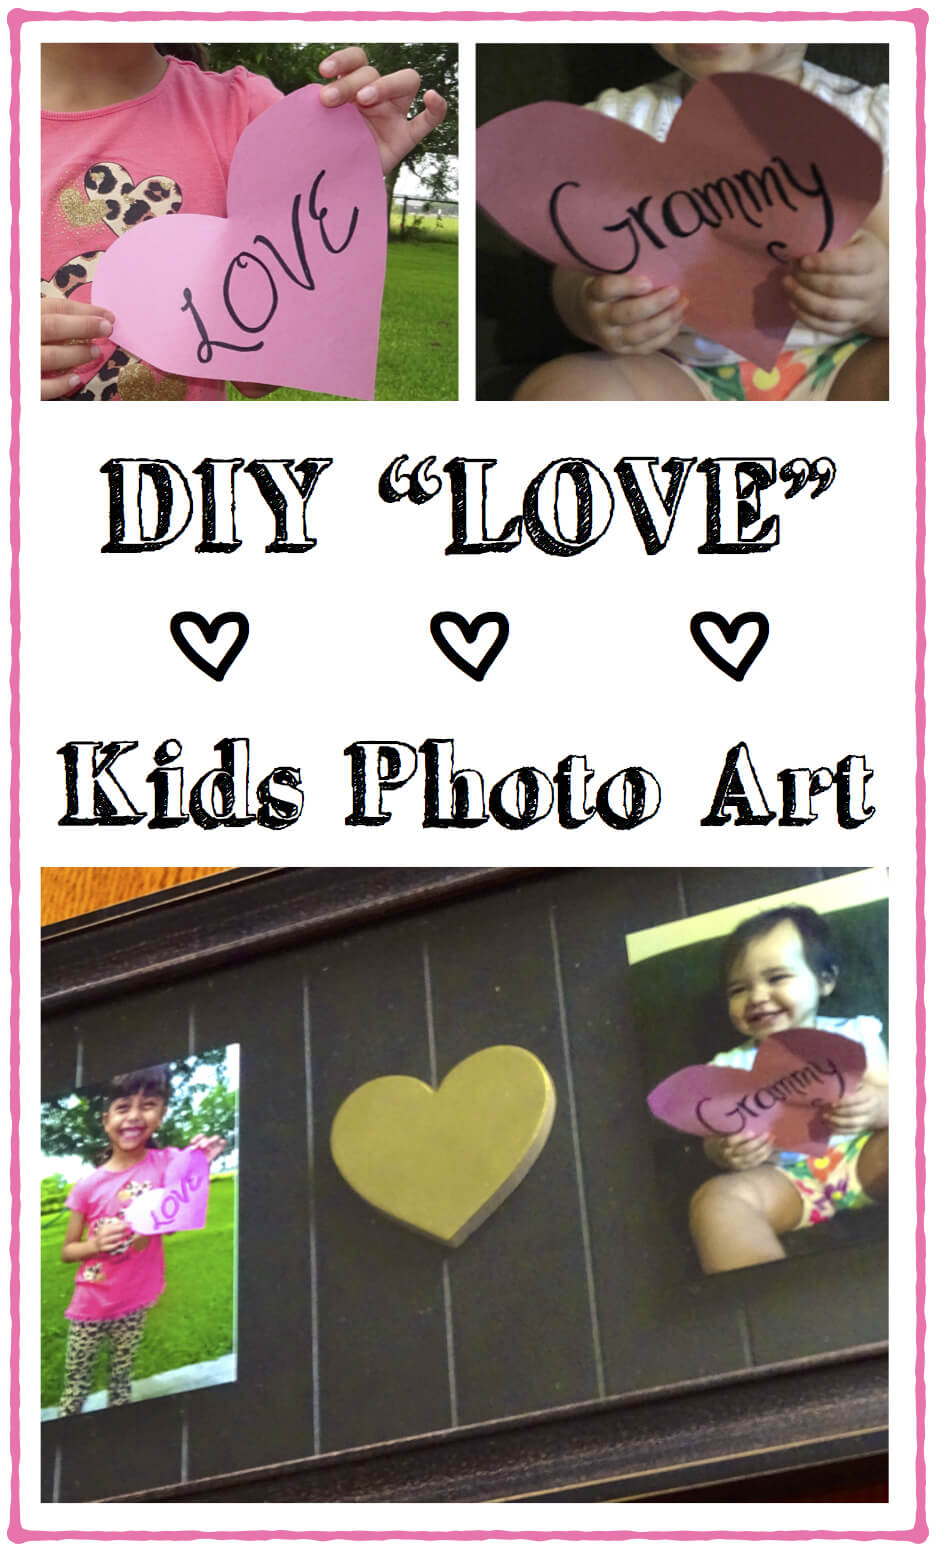 DIY Love Kids Photo Art